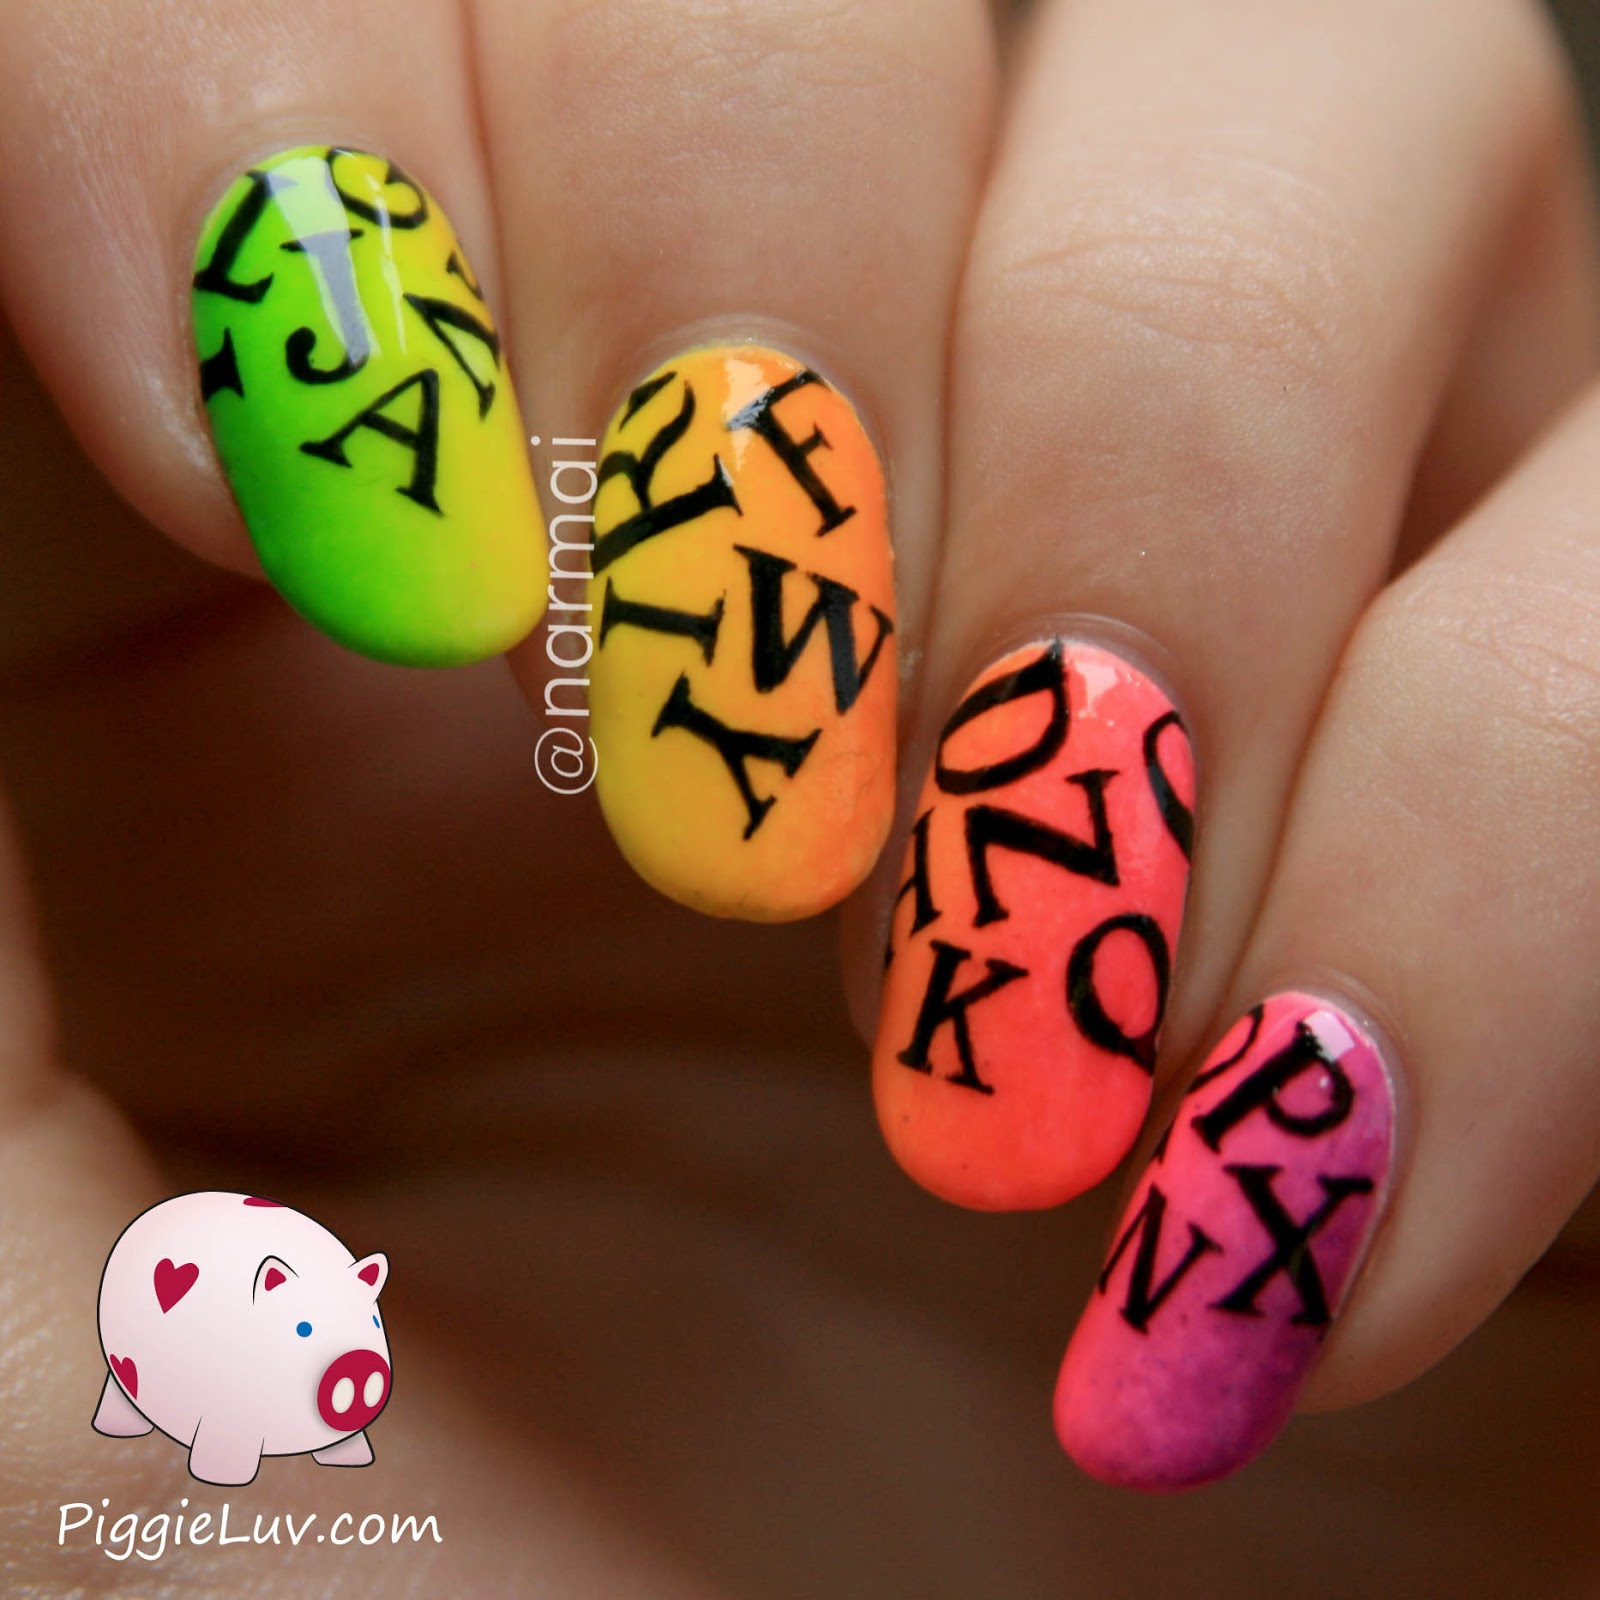 PiggieLuv Neon letter rain nail art (glow in the dark) +